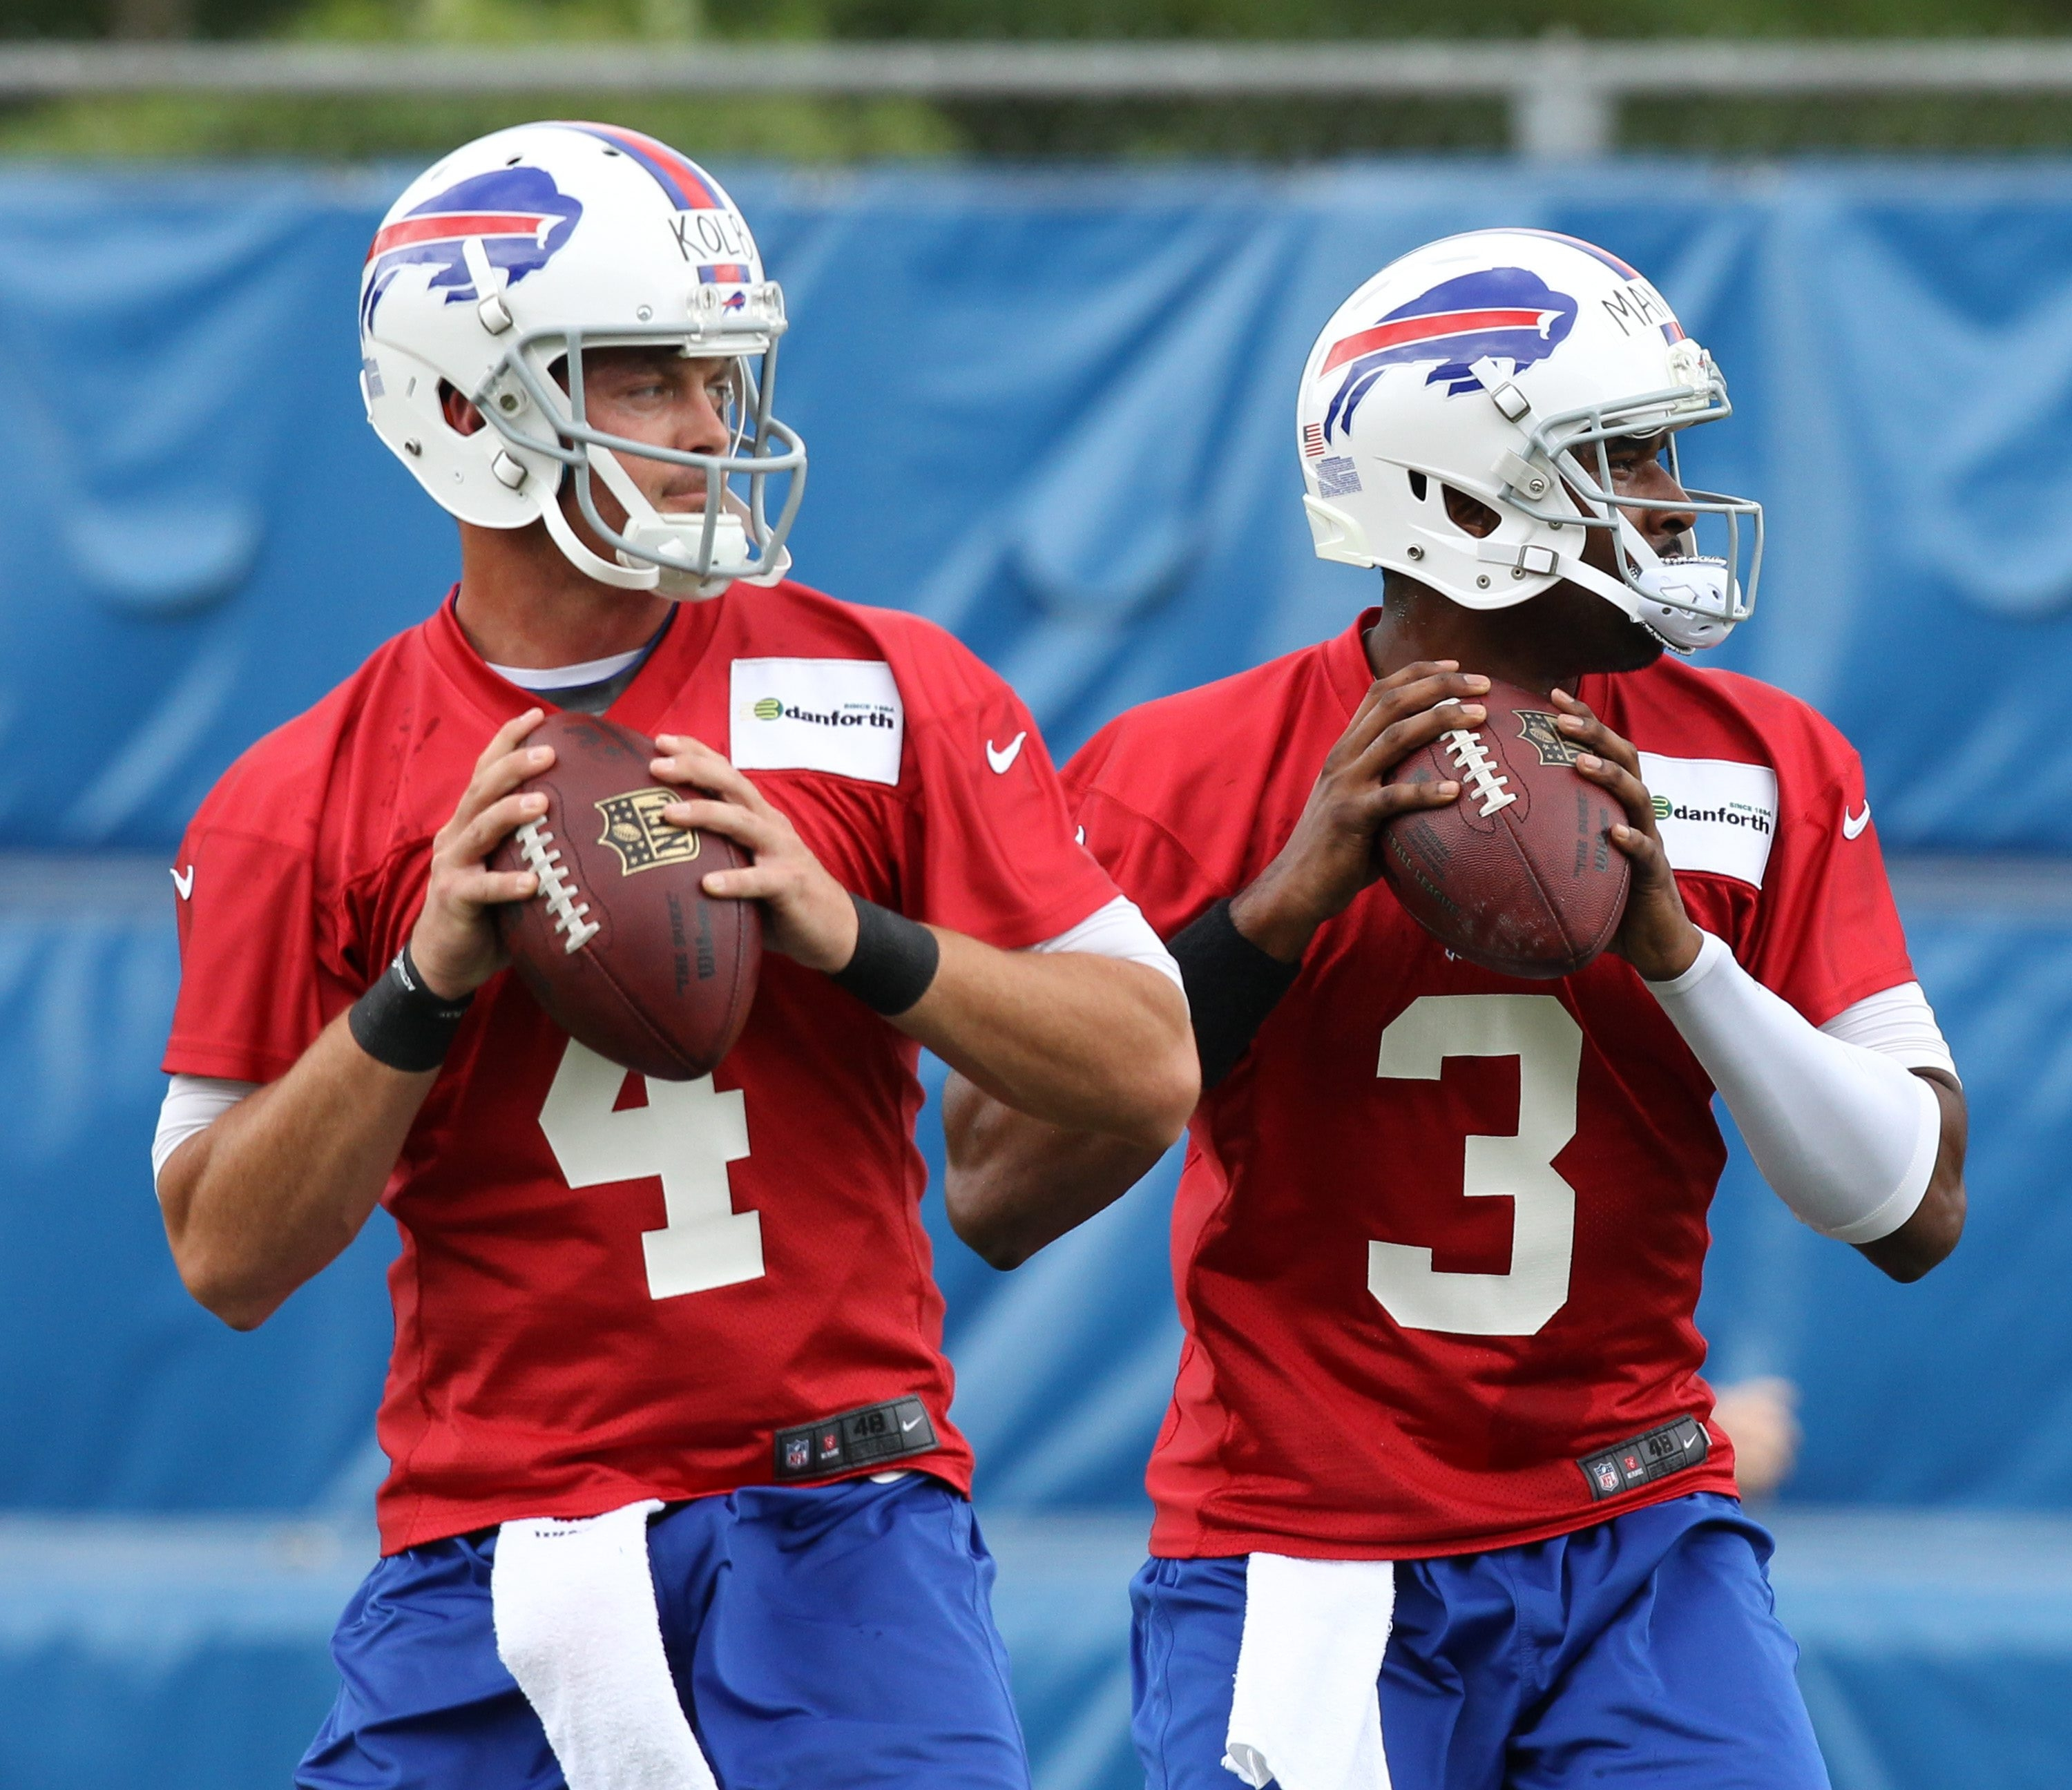 First-round draft choice EJ Manuel, right, will compete for the Bills' starting job with veteran Kevin Kolb.